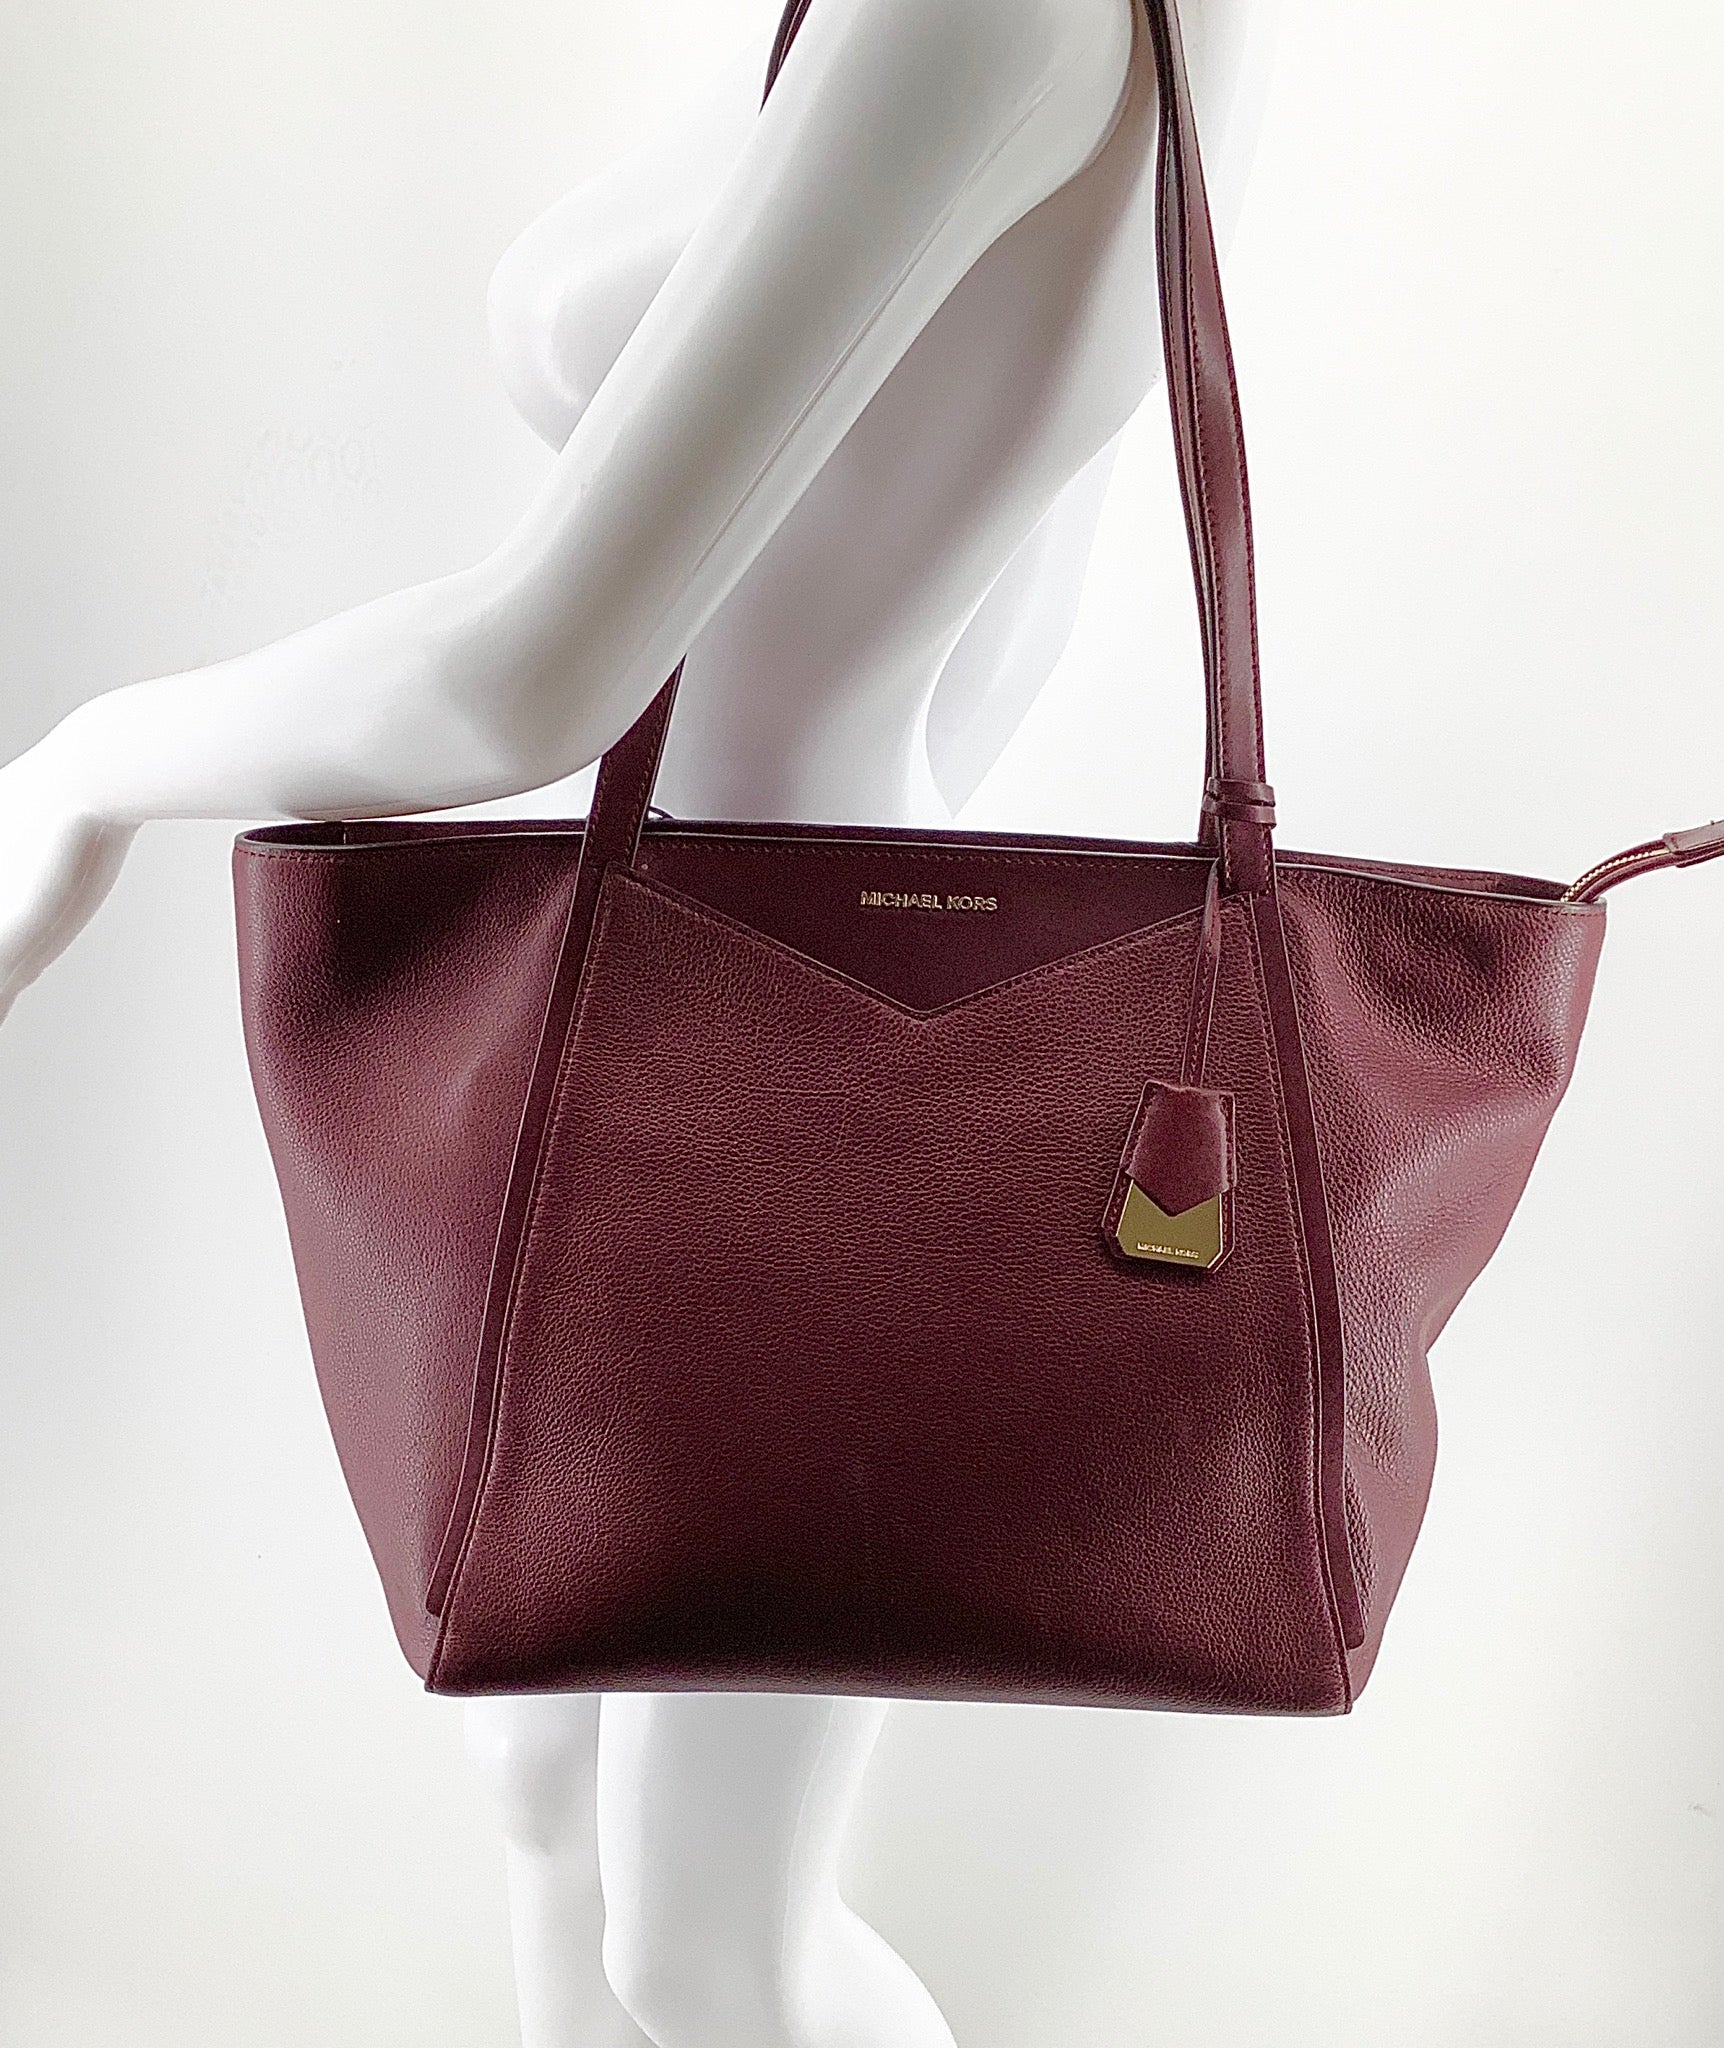 Primary Photo - BRAND: MICHAEL KORS , STYLE: HANDBAG DESIGNER , COLOR: BURGUNDY , SIZE: LARGE , OTHER INFO: AS IS DUE TO COSMETIC WEAR. AS SEEN IN PICTURES, SKU: 105-3752-29907